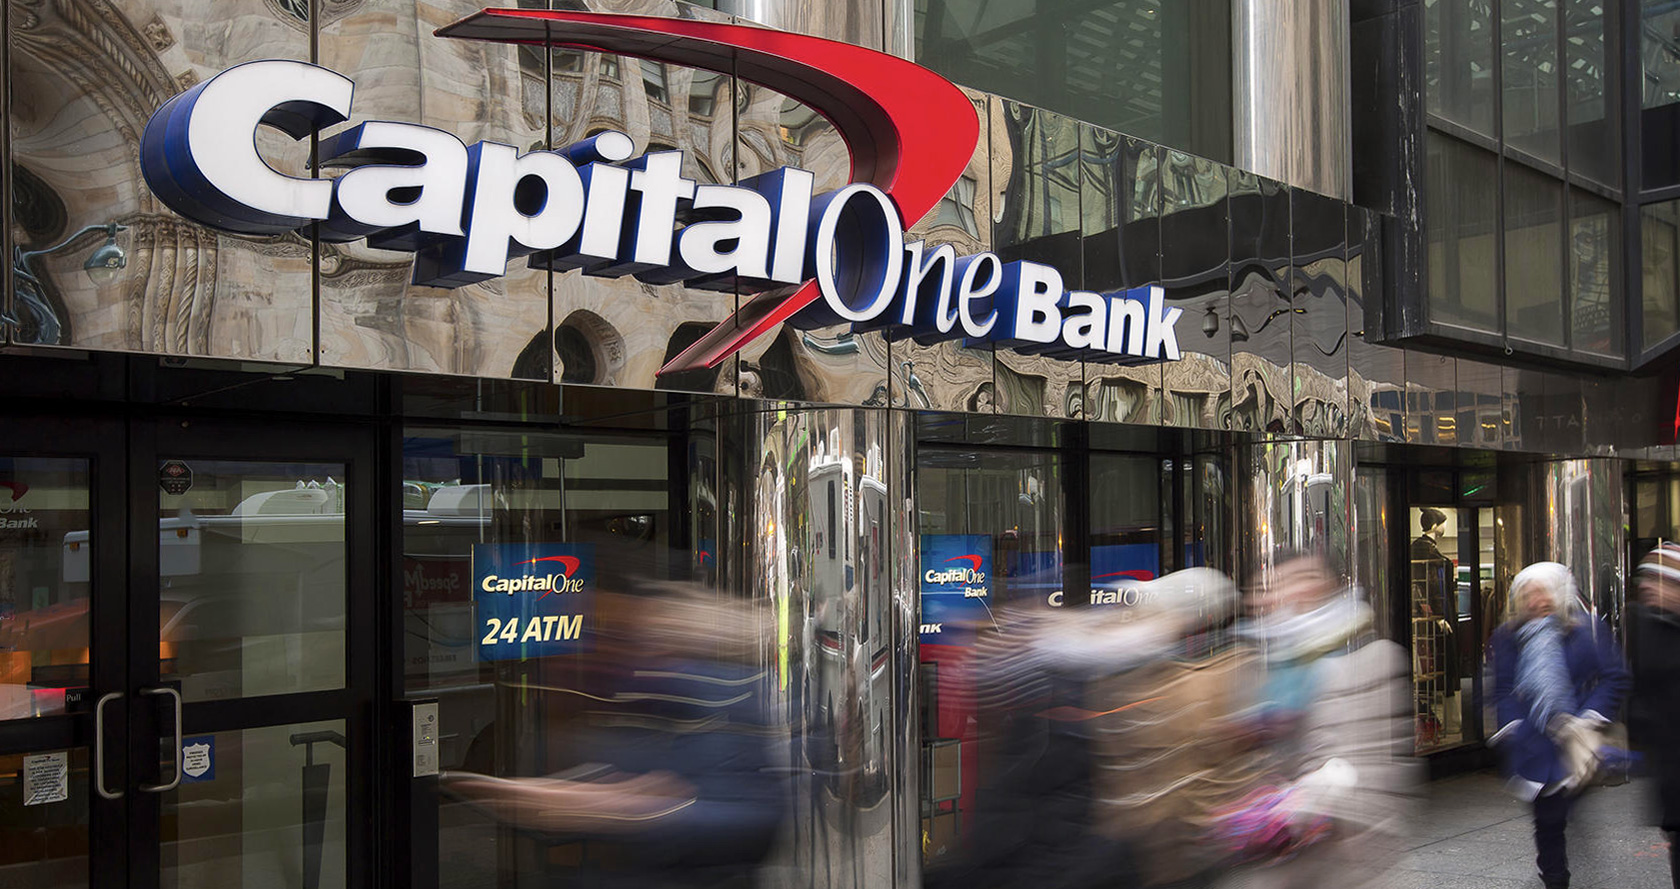 A Seattle Woman Charged With Capital One Data Theft Affecting 106 Million People